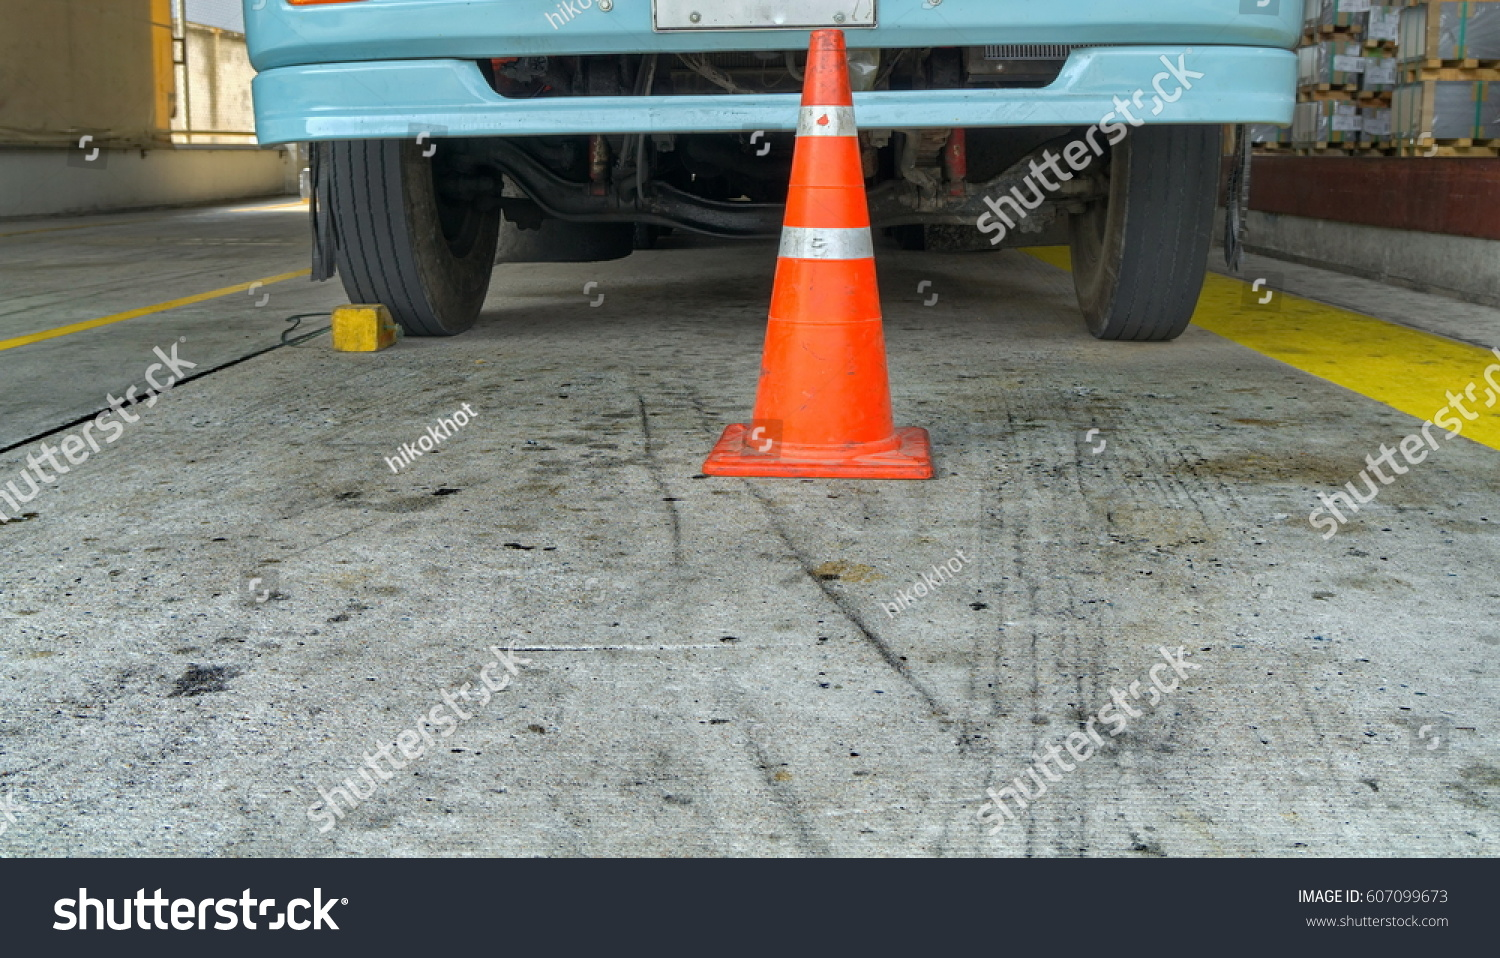 Truck parked with wheel stopper #607099673